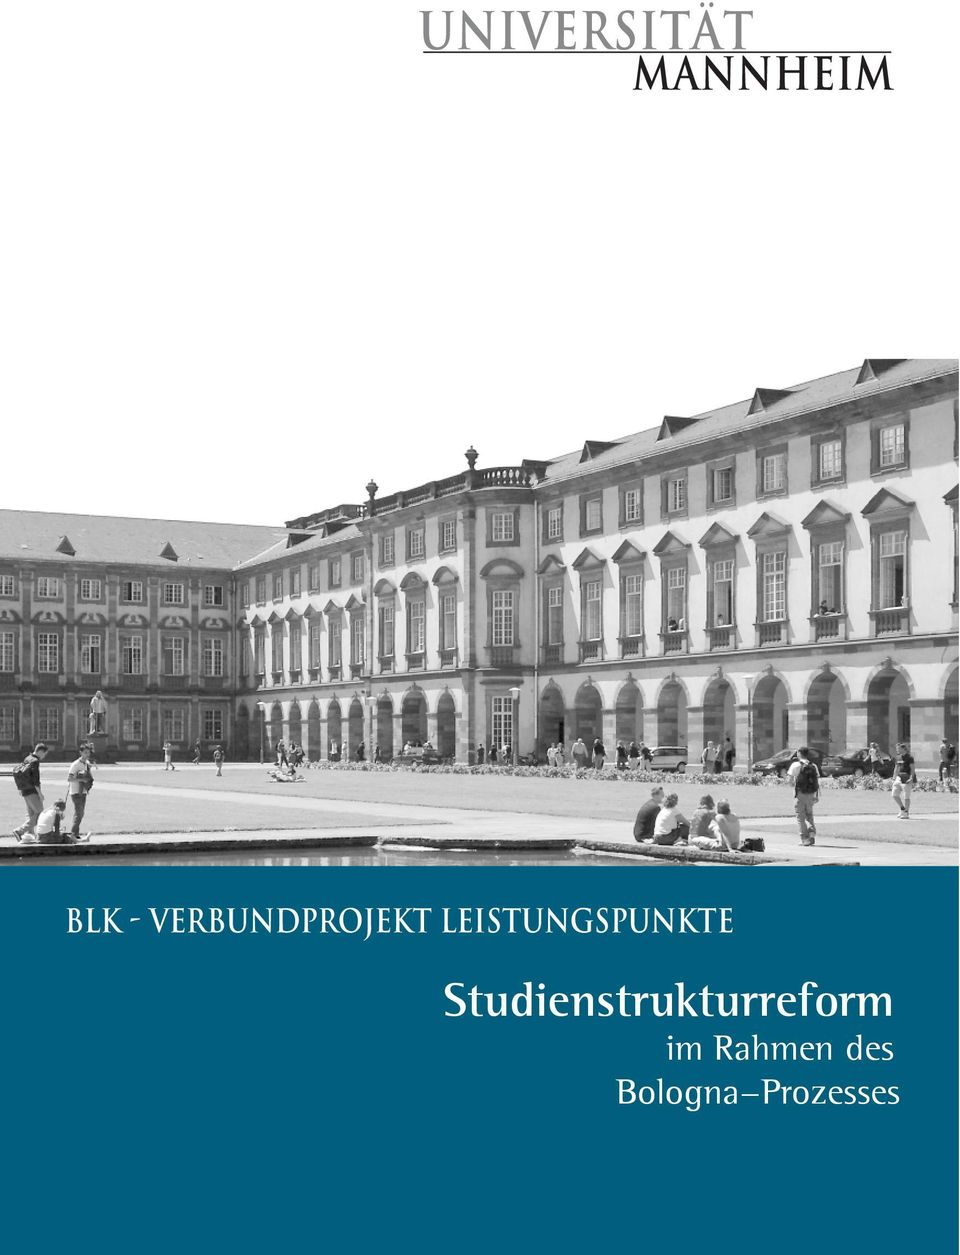 Studienstrukturreform